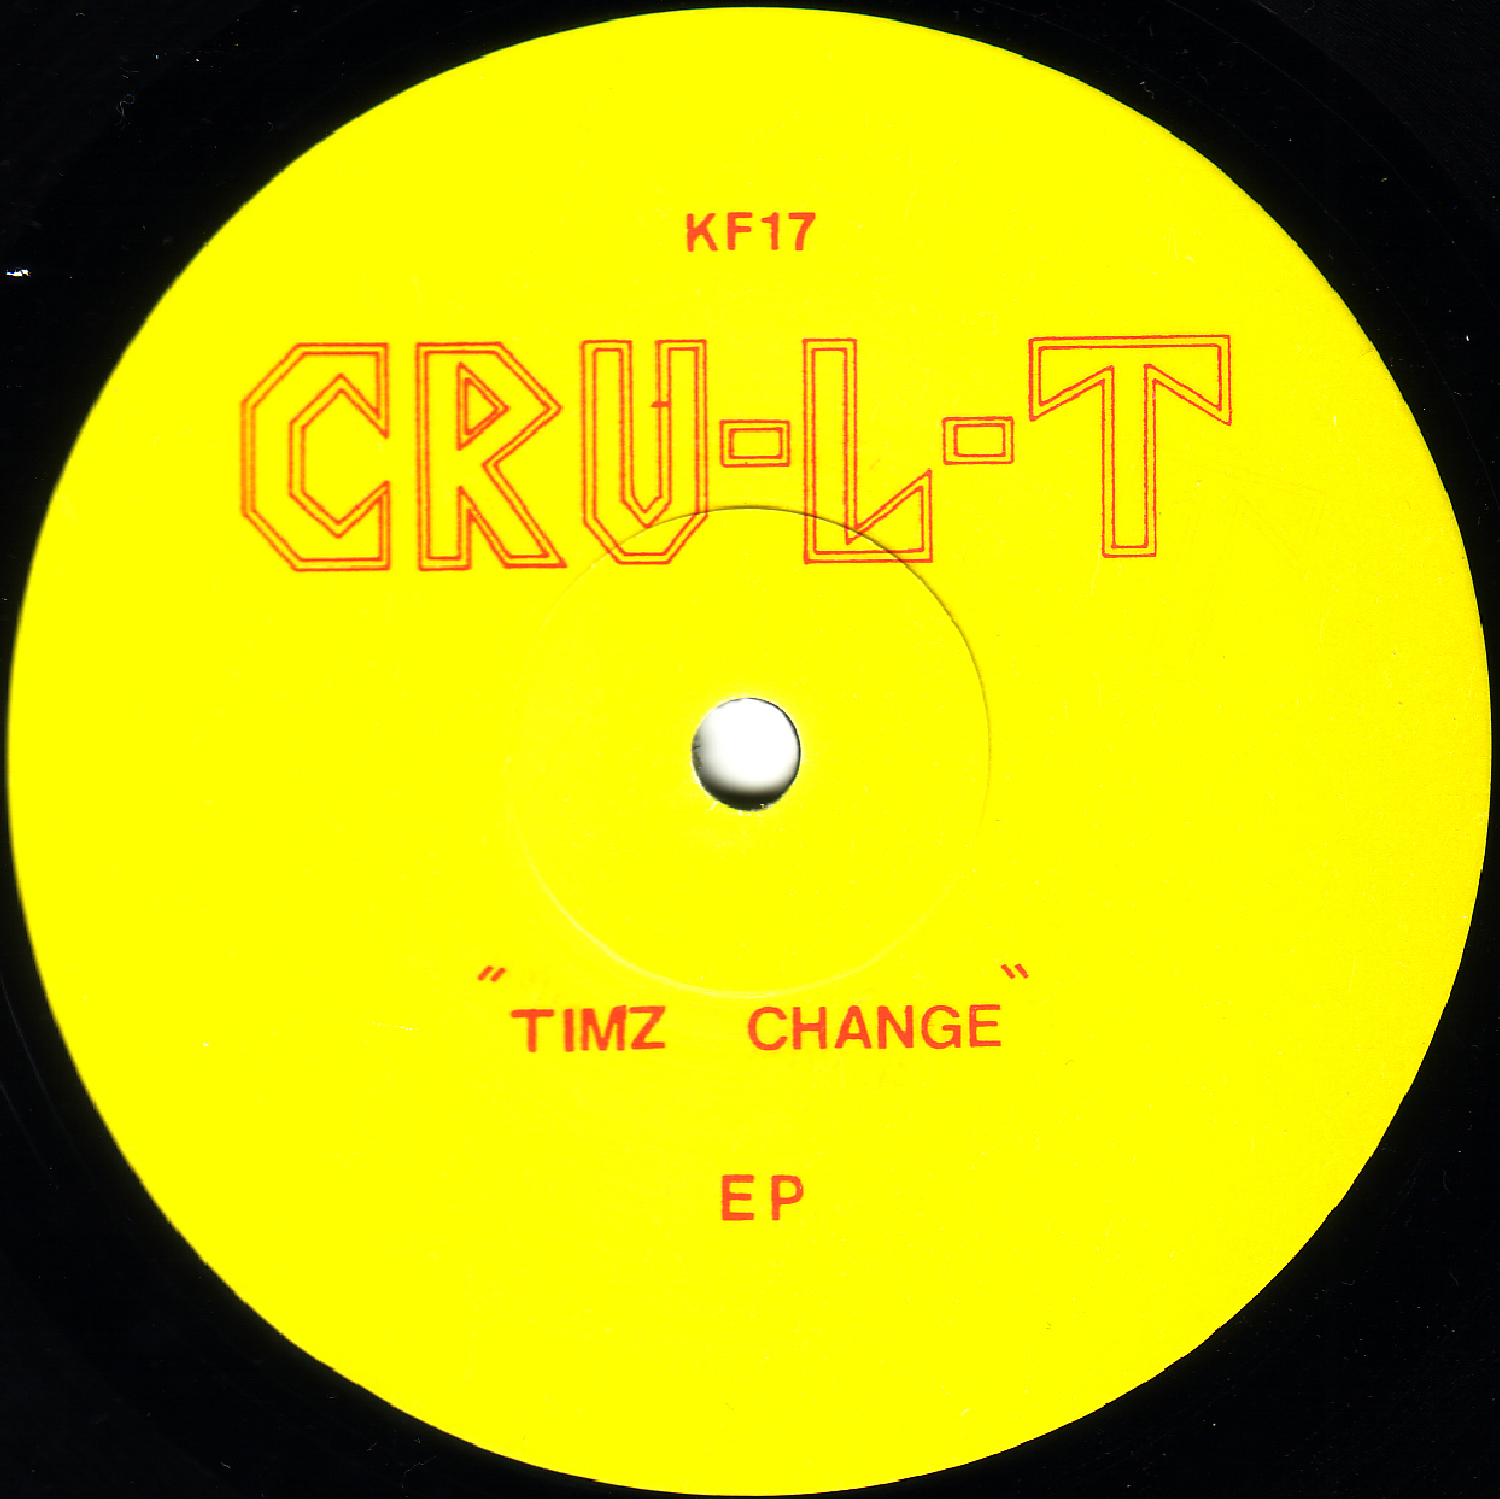 [KF017] Cru-l-t - Timz Change EP (Digital Only)